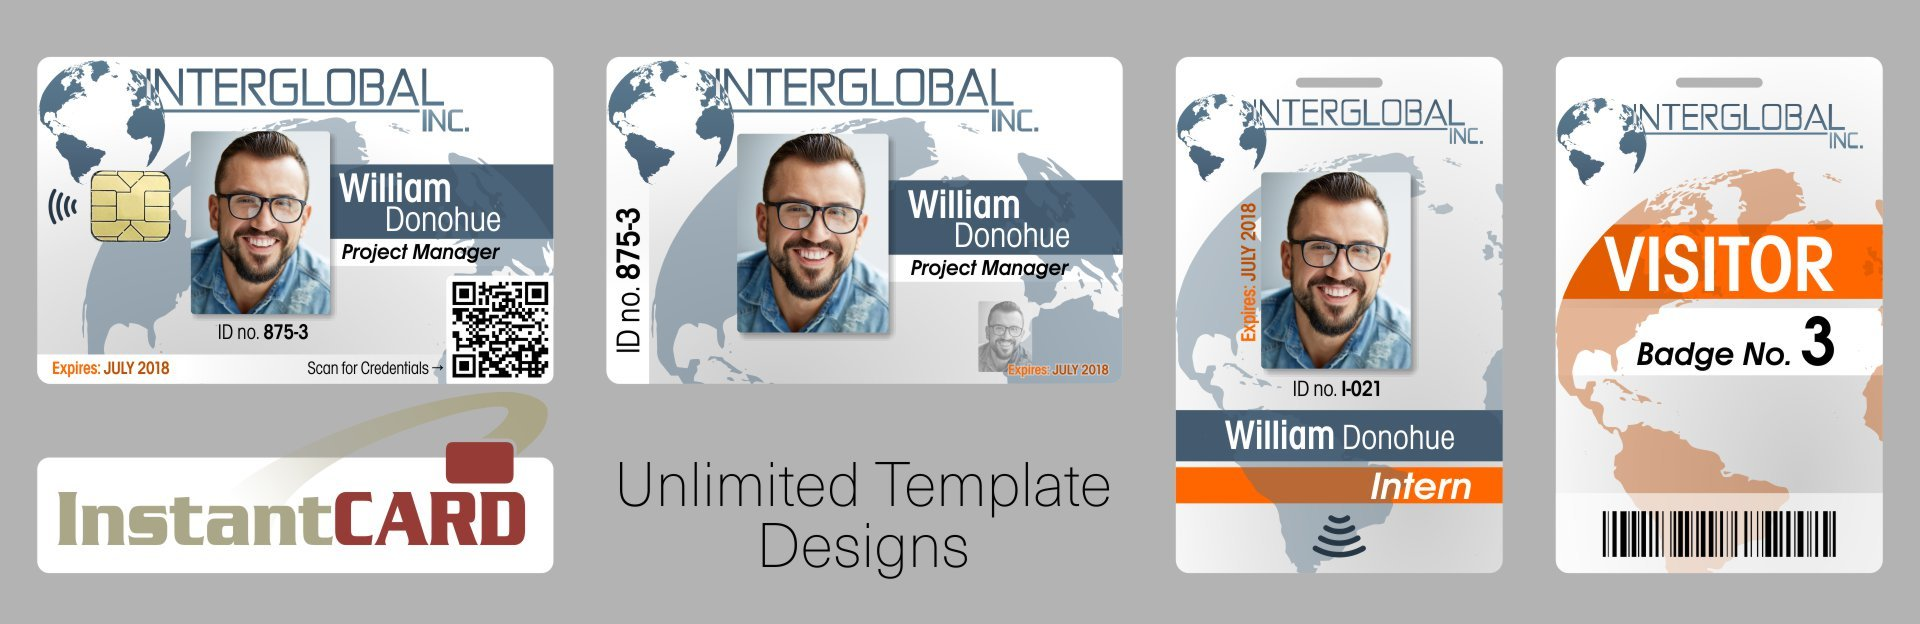 Unlimited ID Card Template Designs—InstantCard